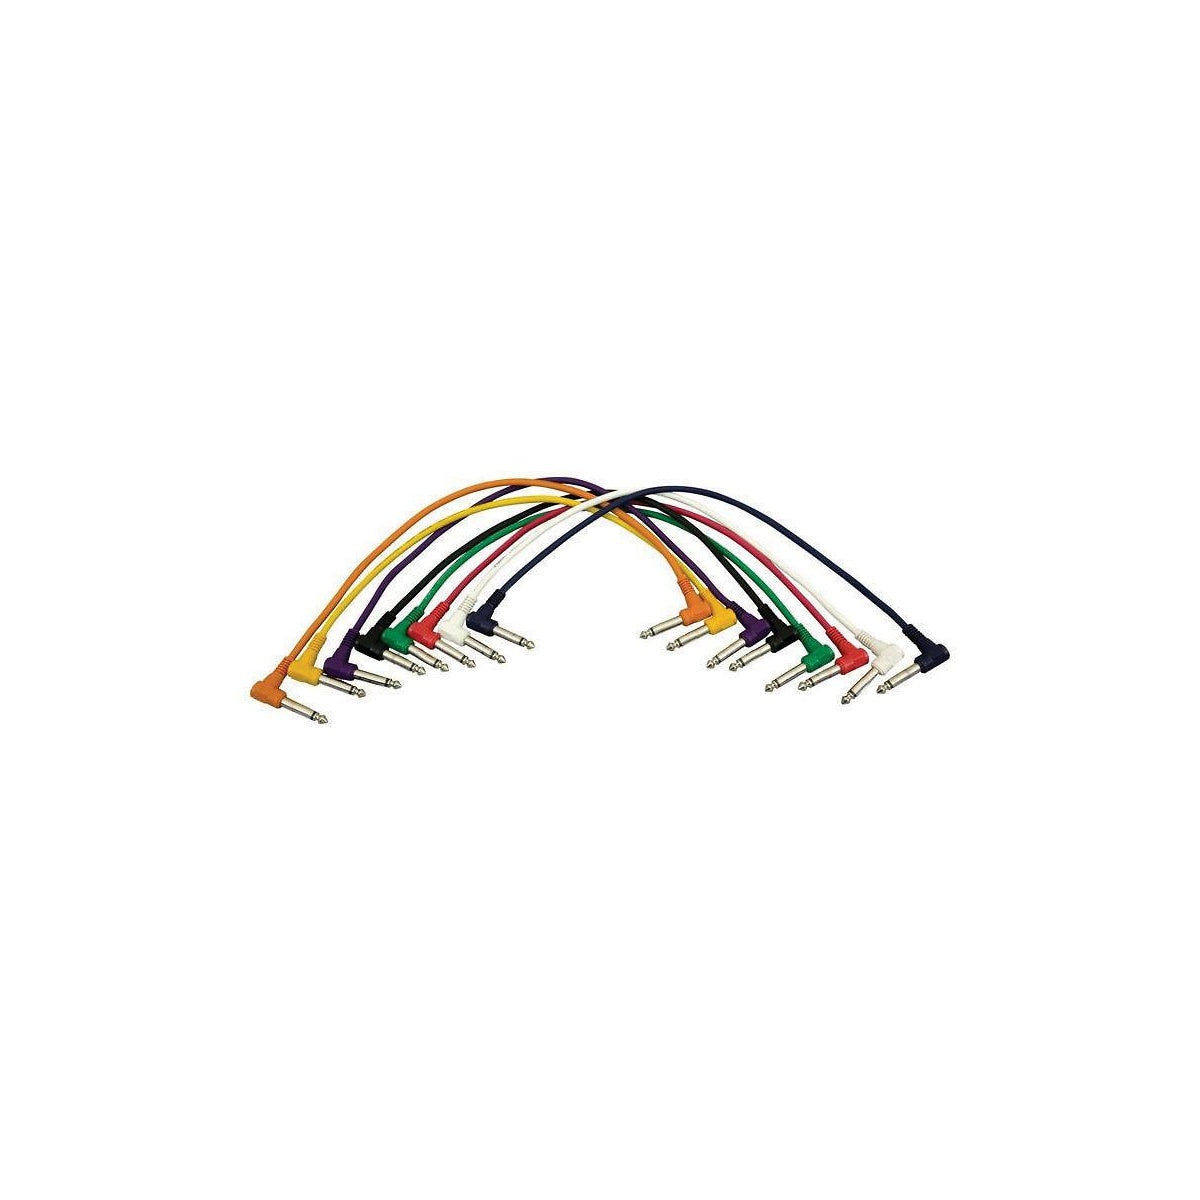 Hot Wires 1/4 Inch TS Patch Cables (8-Pack), PC1817QTR, Right Angle End, 8-Pack, 17 Inch